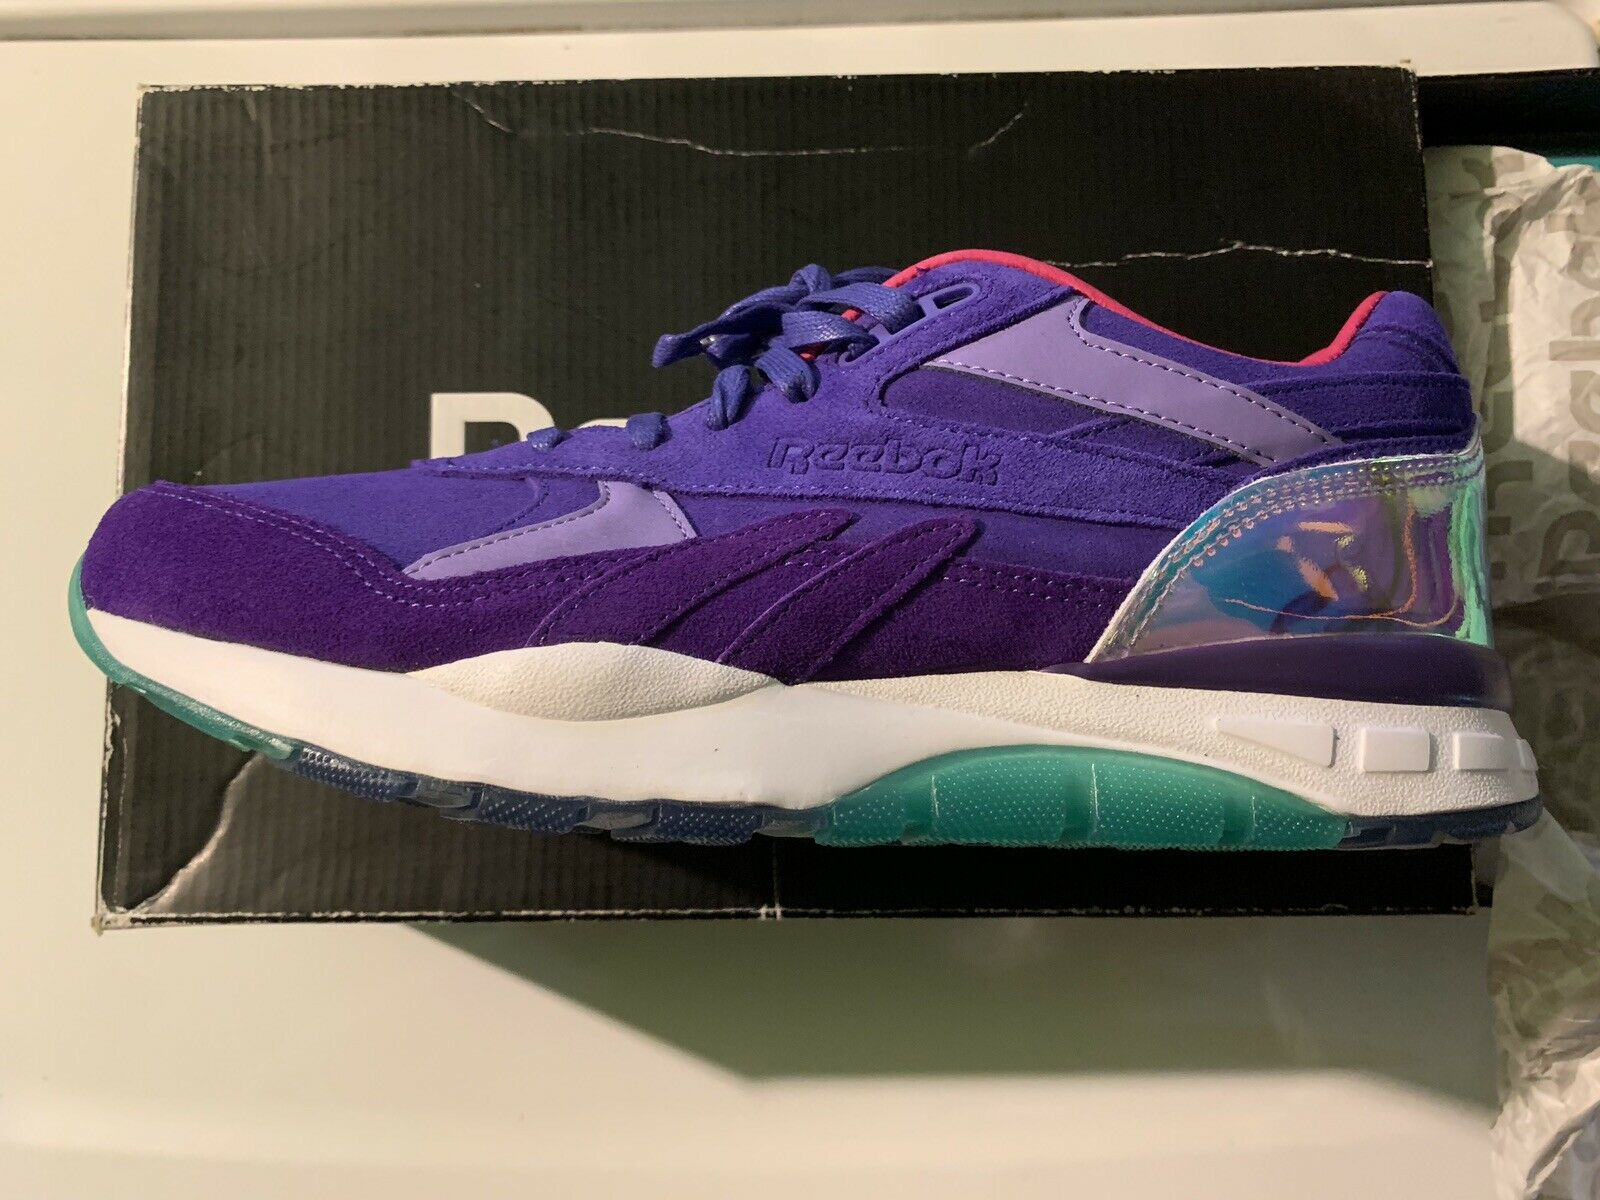 Reebok Ventilator Camron Purple Haze